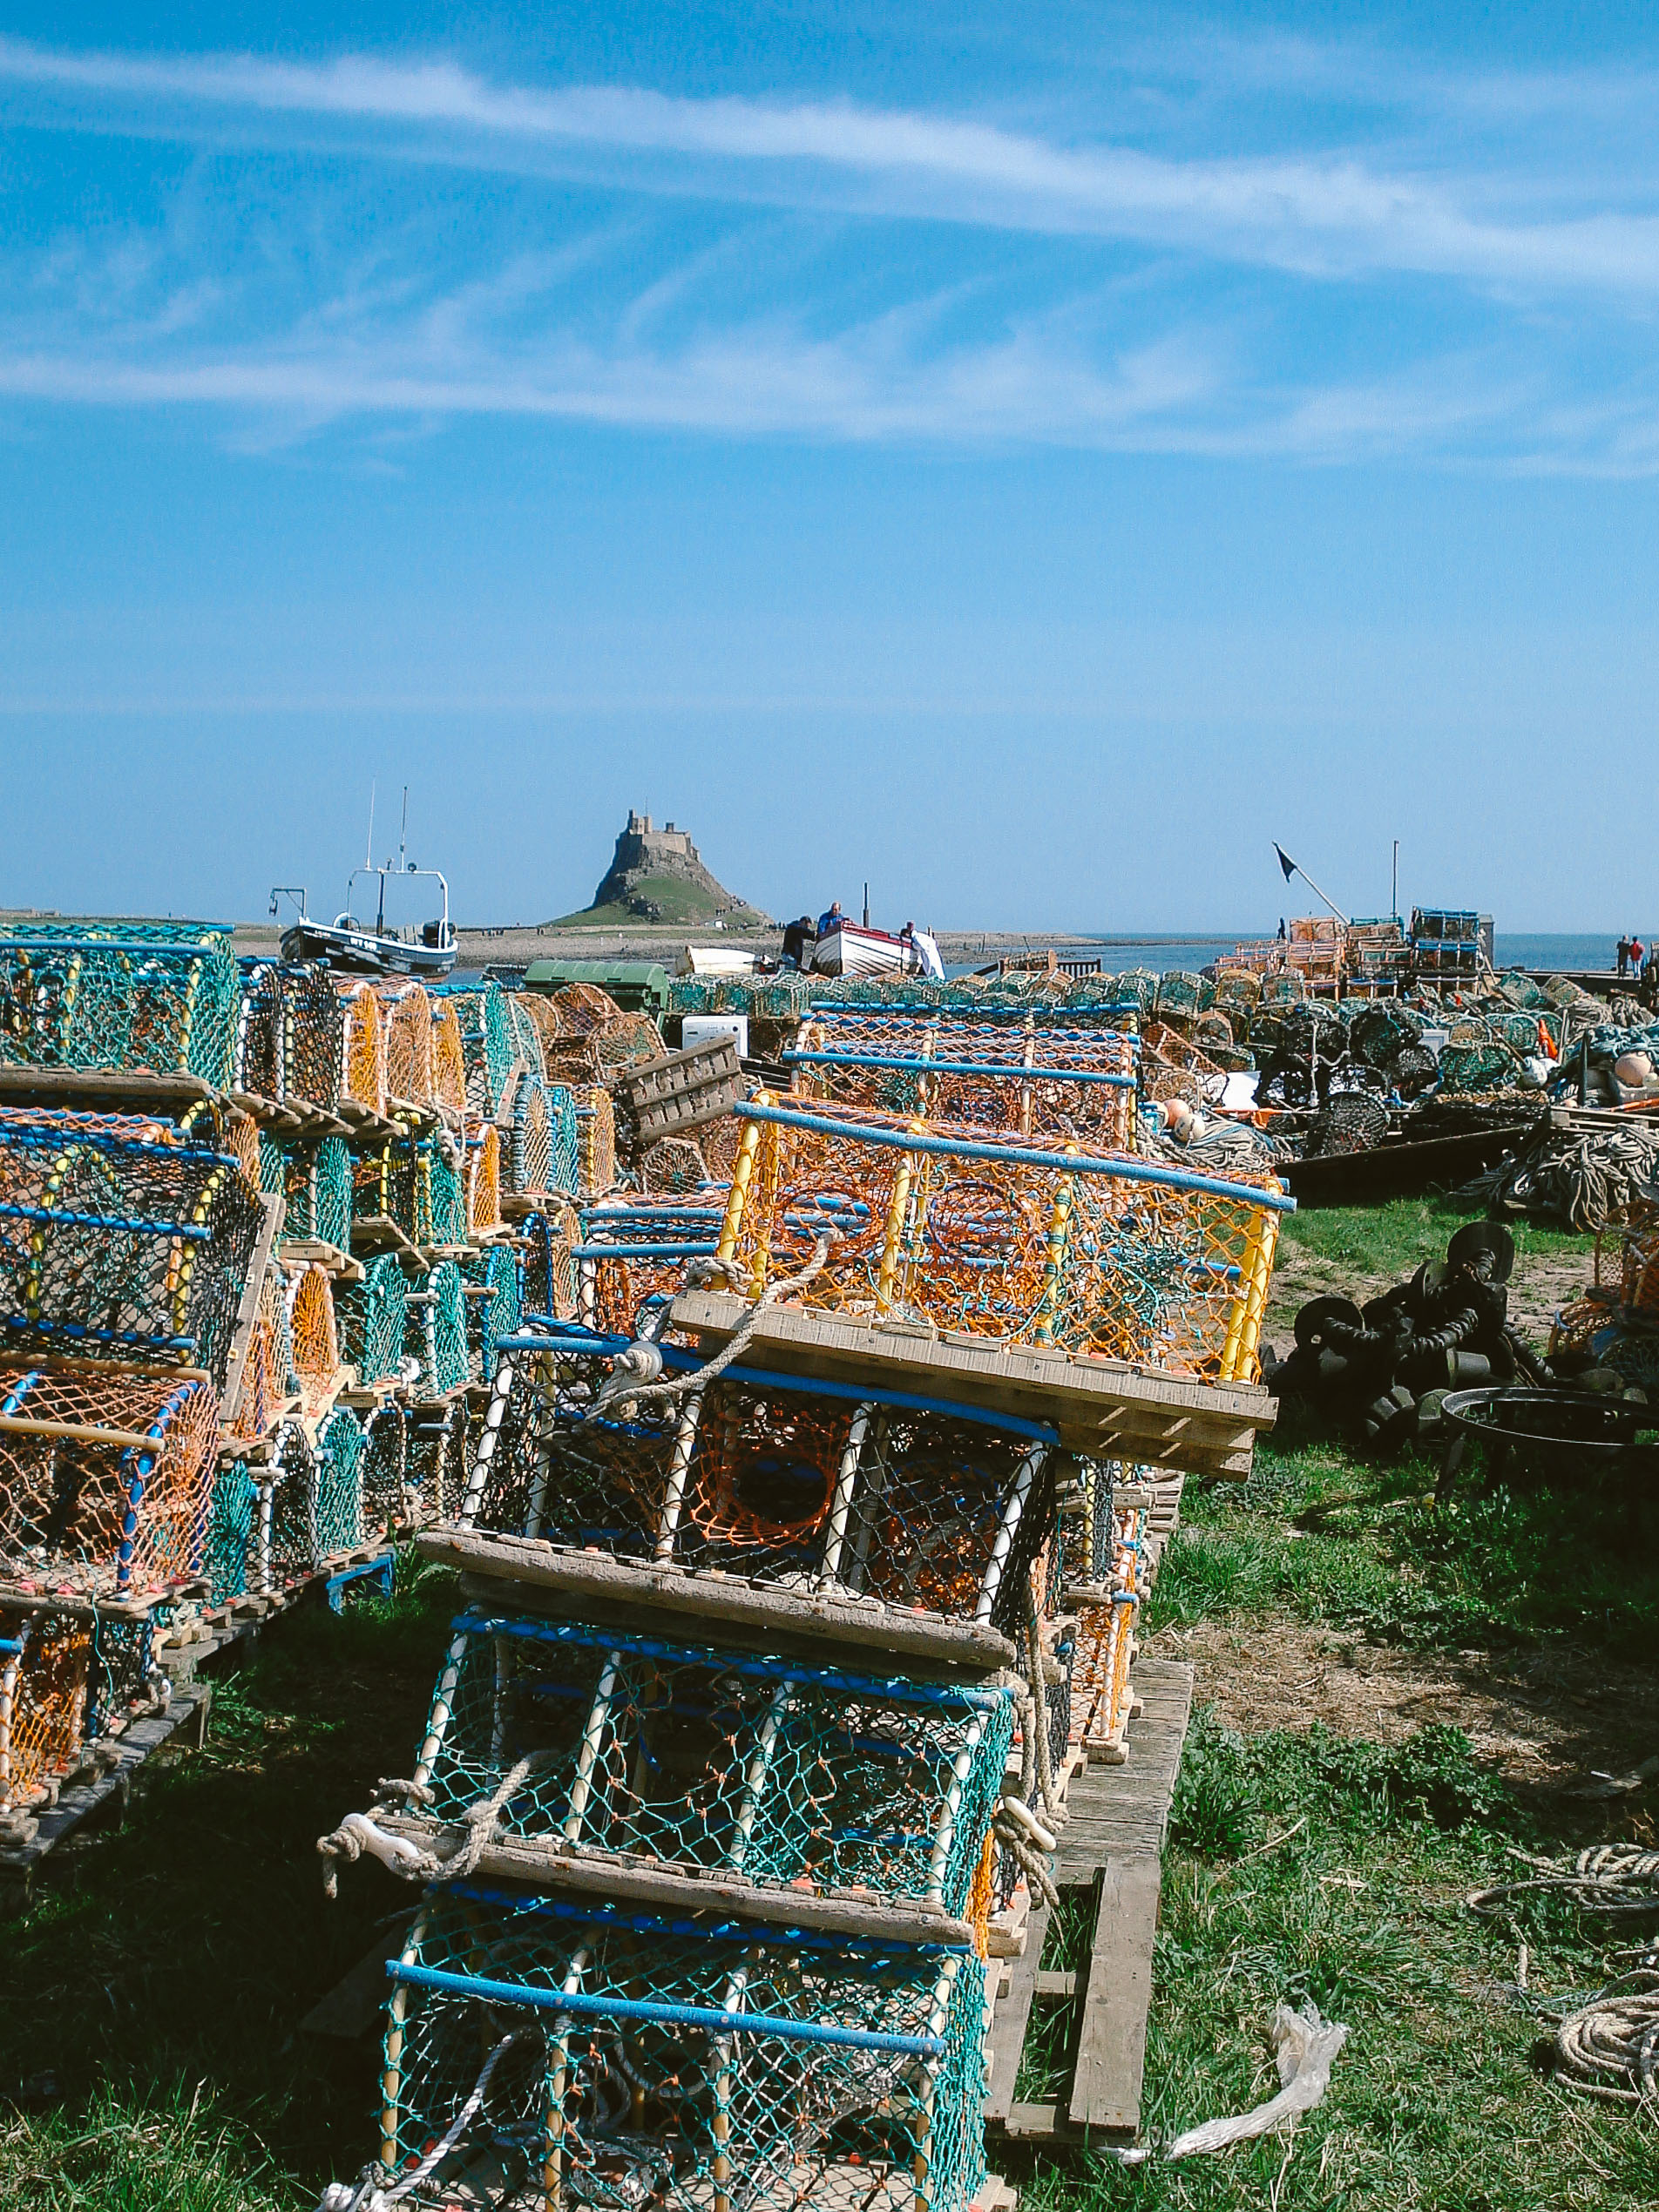 Lindisfarne Castle with Lobster Pots in the foreground